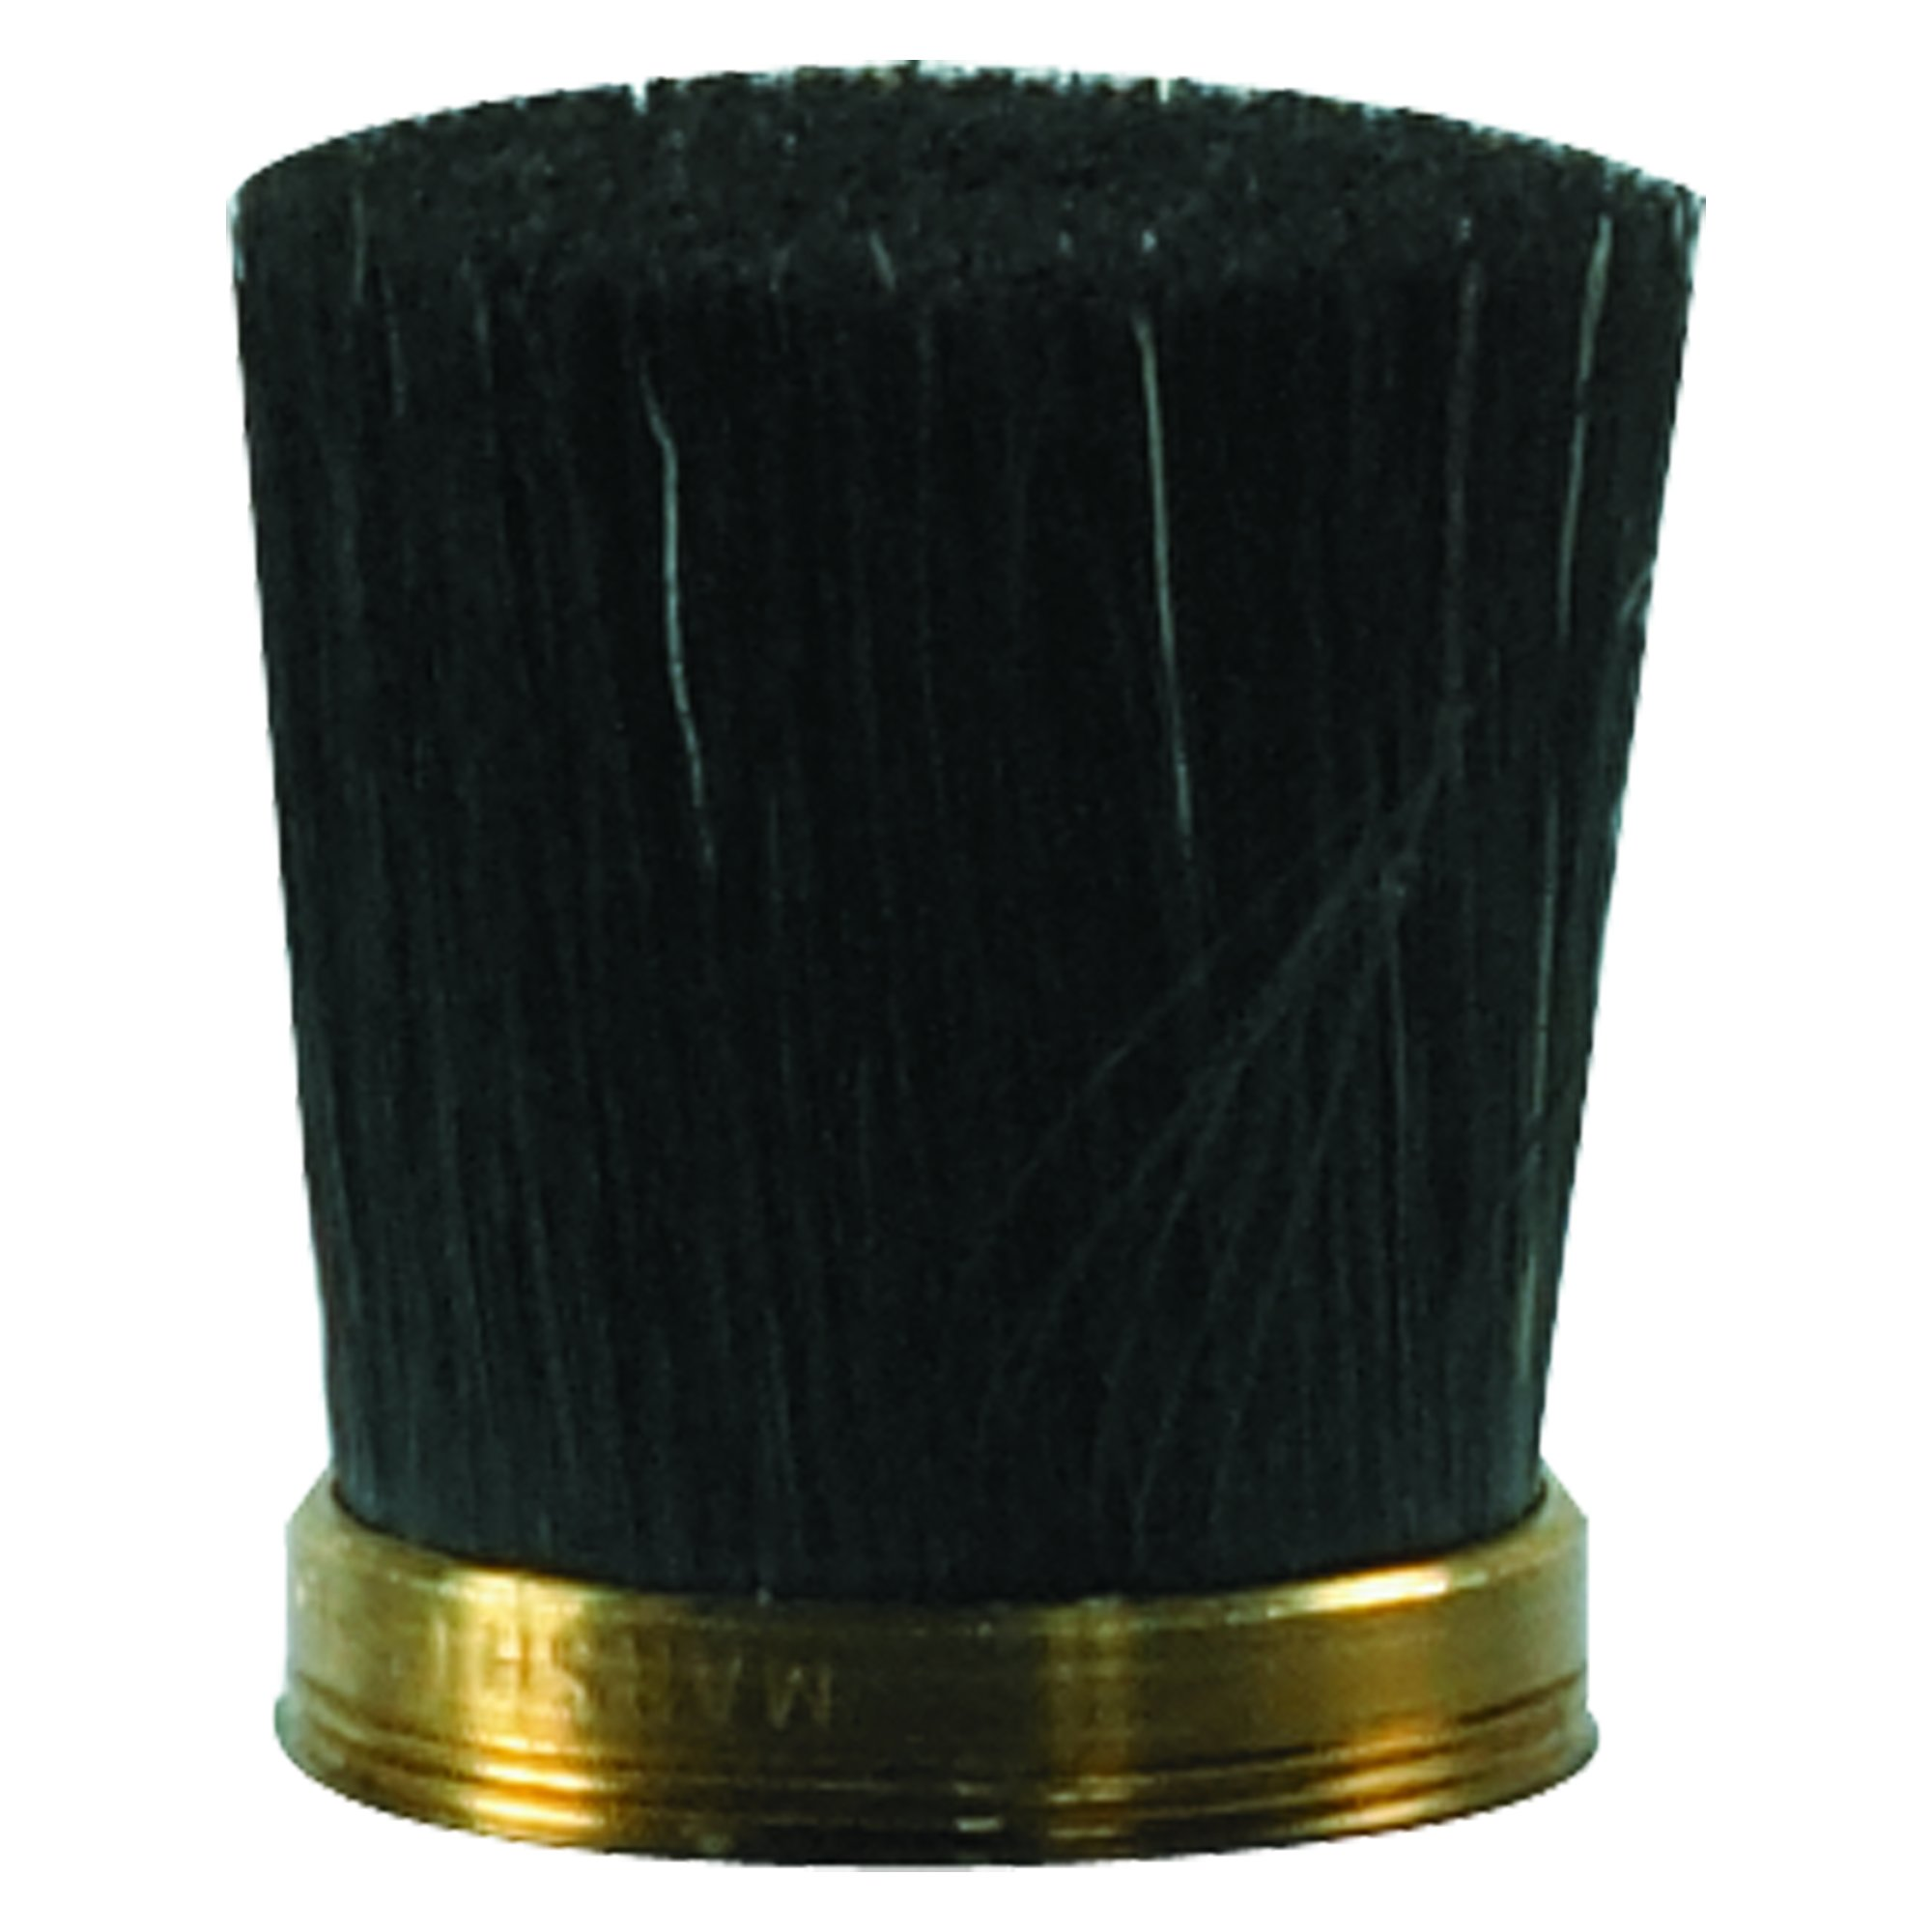 Partners Brand PSTMA44 K-1 Replacement Brush Tip, Black by Partners Brand